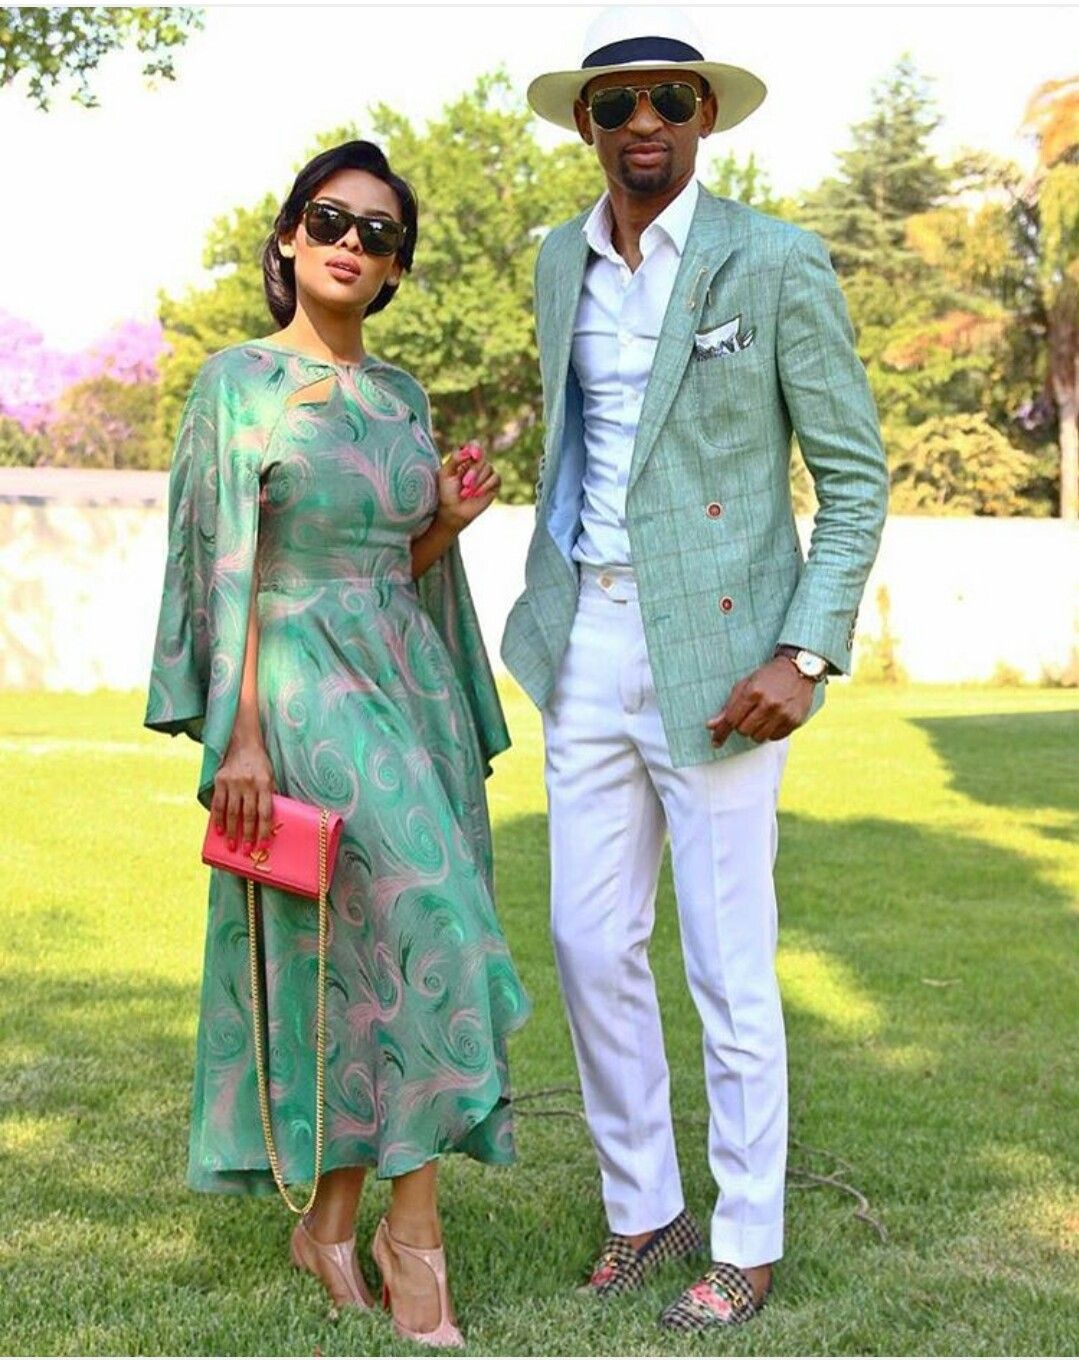 Pin by prudence nchabeleng on Instagram queens Couples